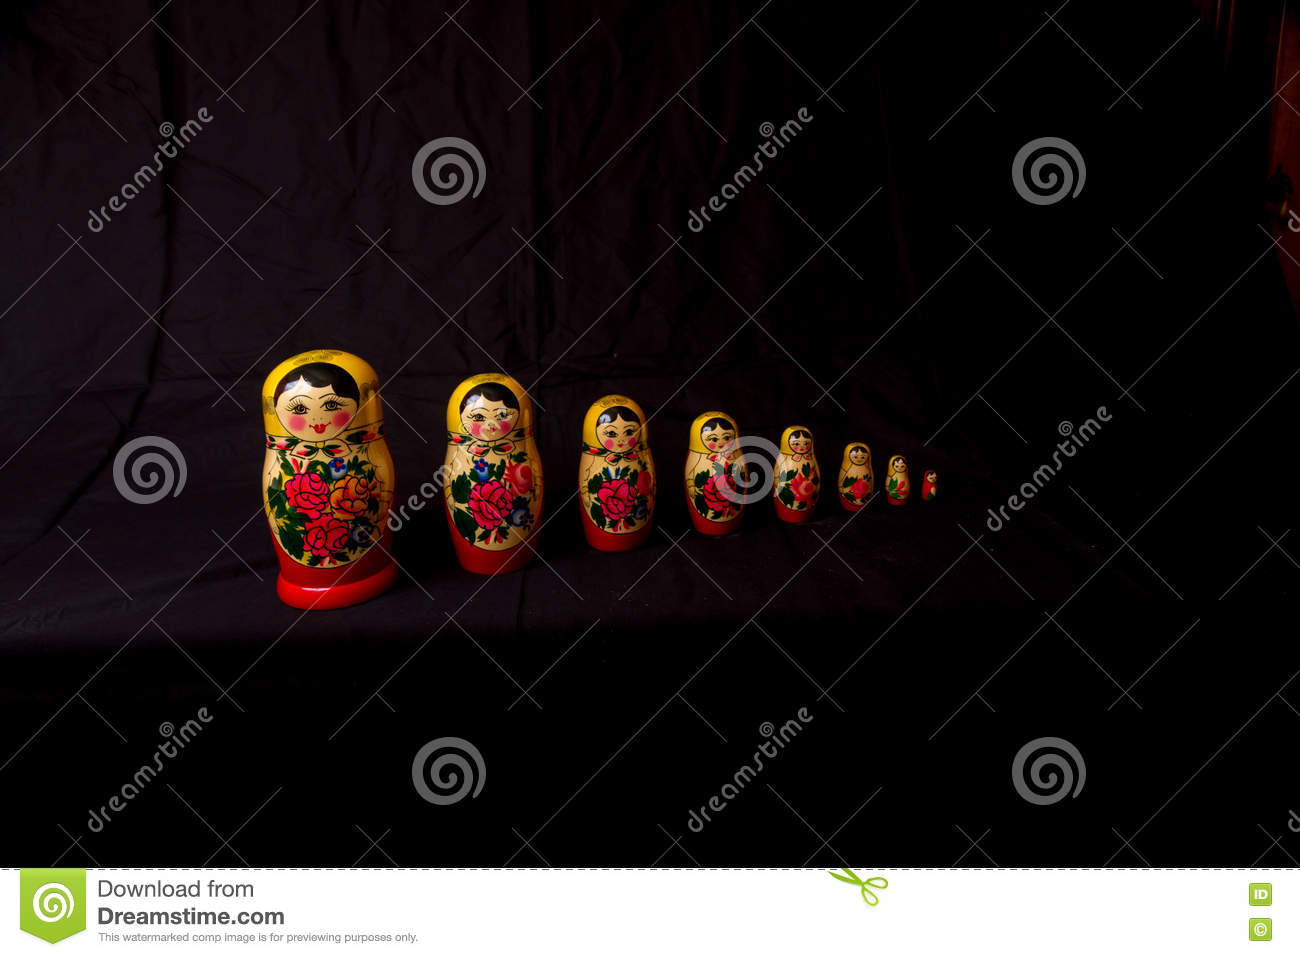 Russian Dolls matryoshka in low light